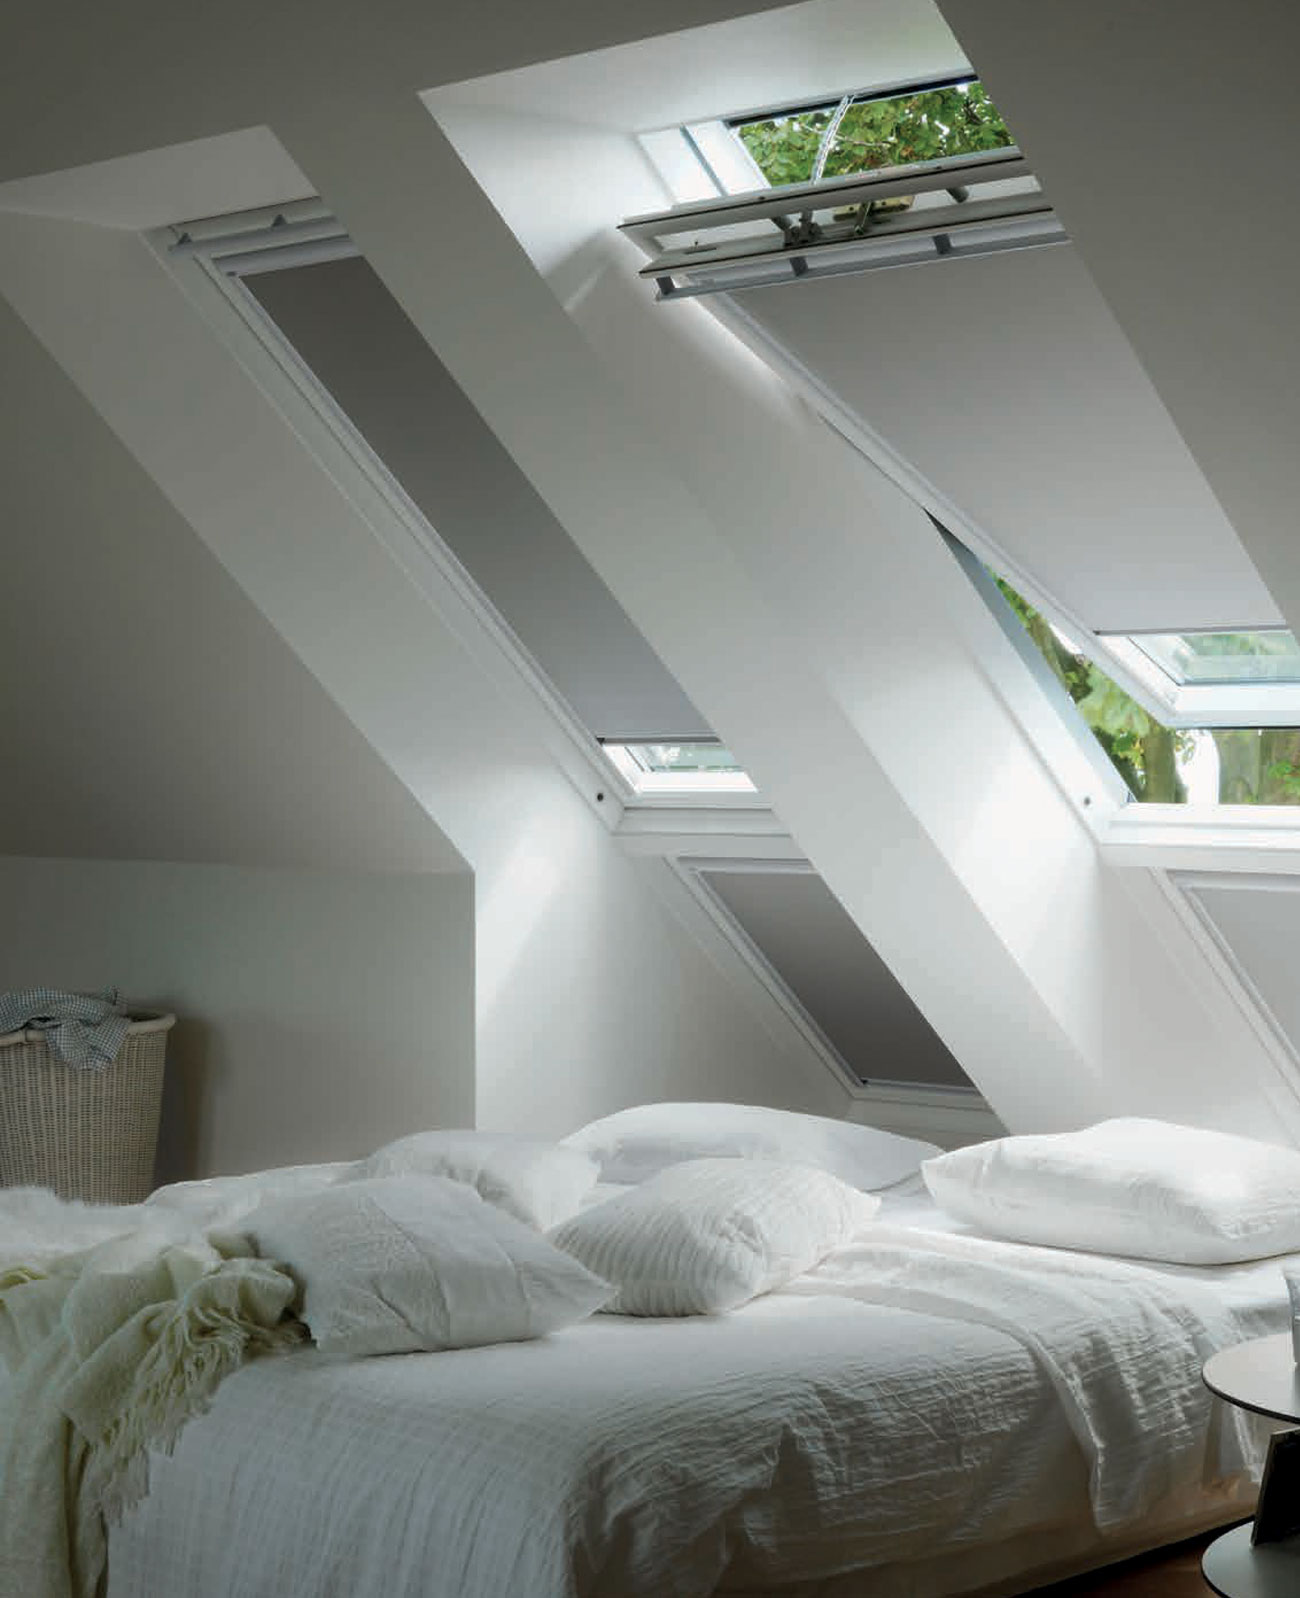 High Quality Roof Window Blinds Supplier in Lurgan, Northern Ireland - Apex Blinds